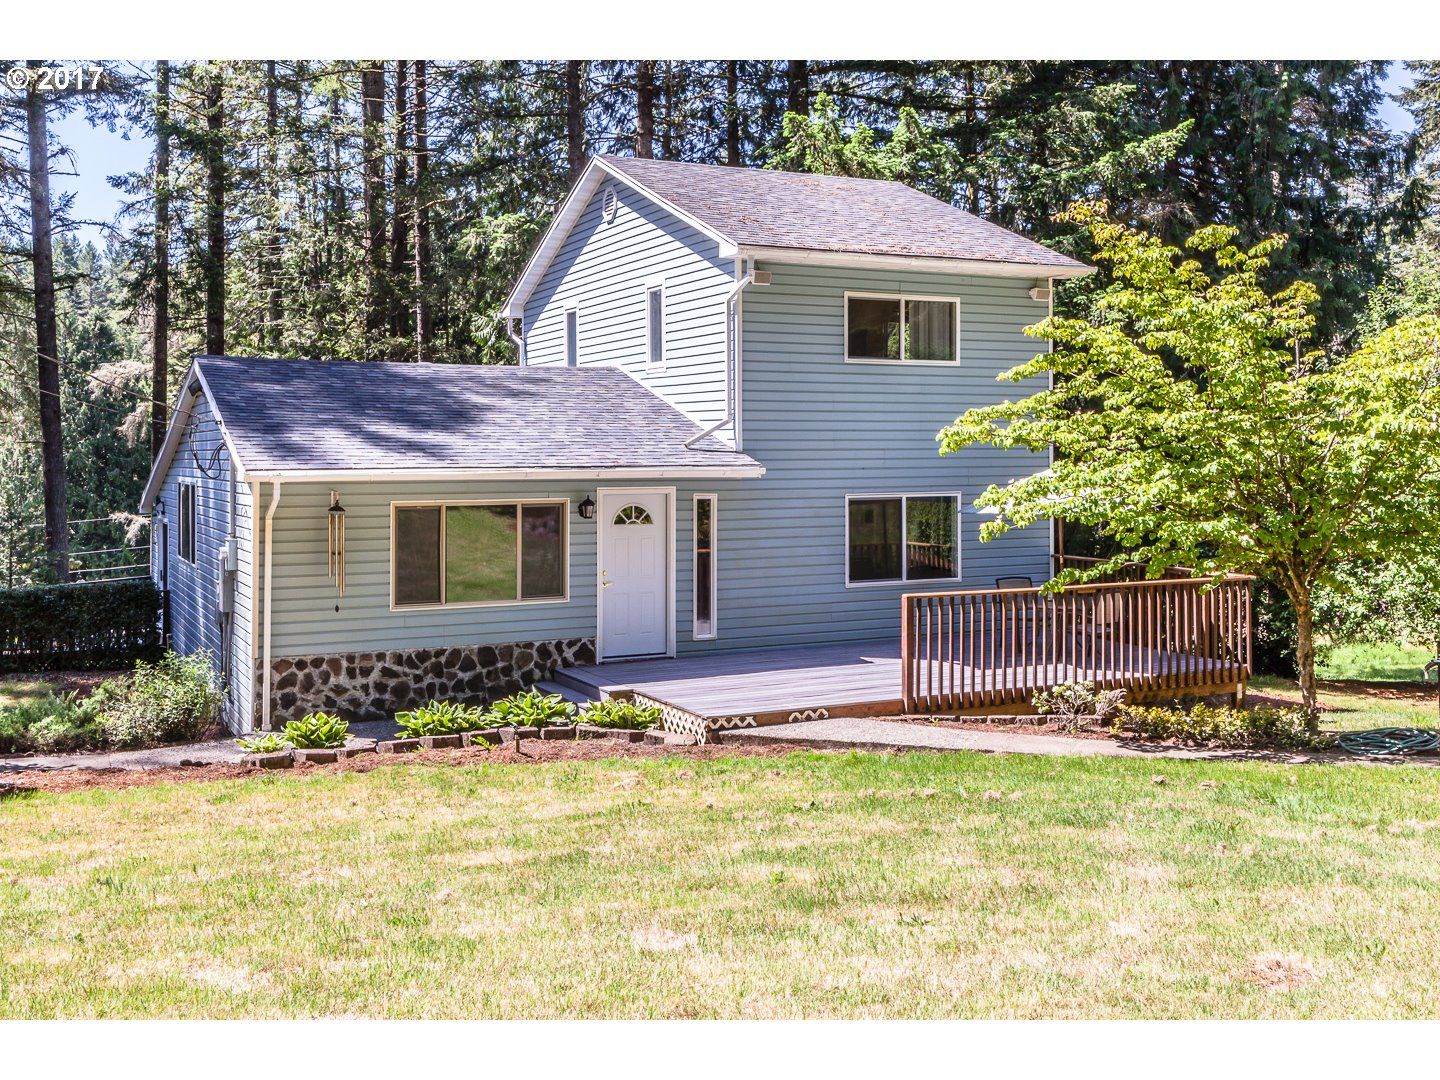 30743 S DHOOGHE RD, Colton, OR 97017